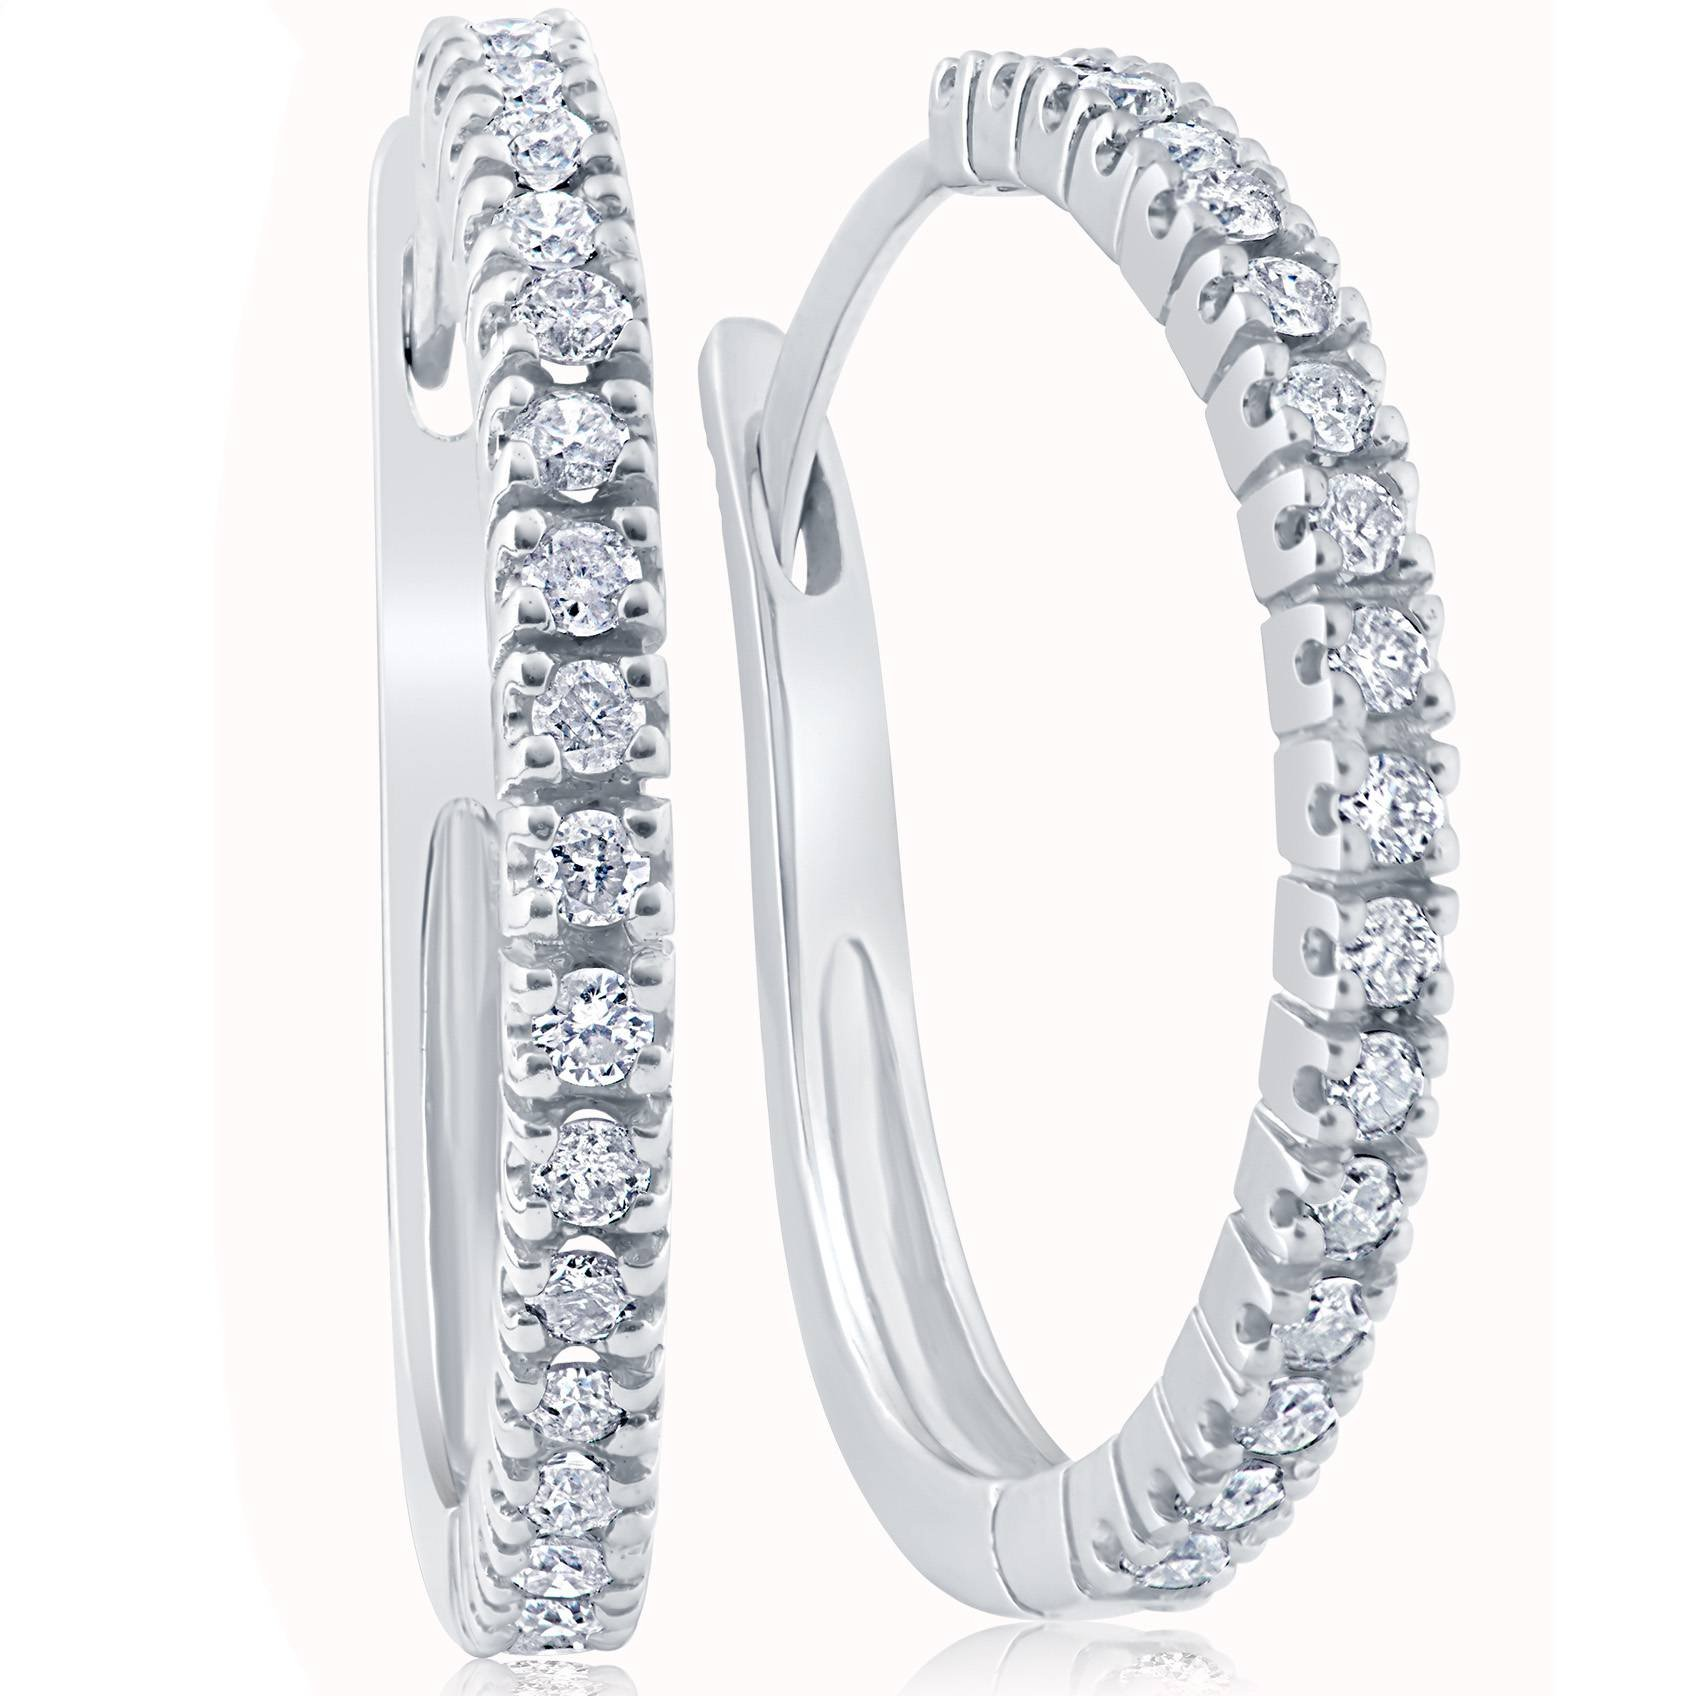 1/2ct Diamond Hoops 10K White Gold by P3 POMPEII3